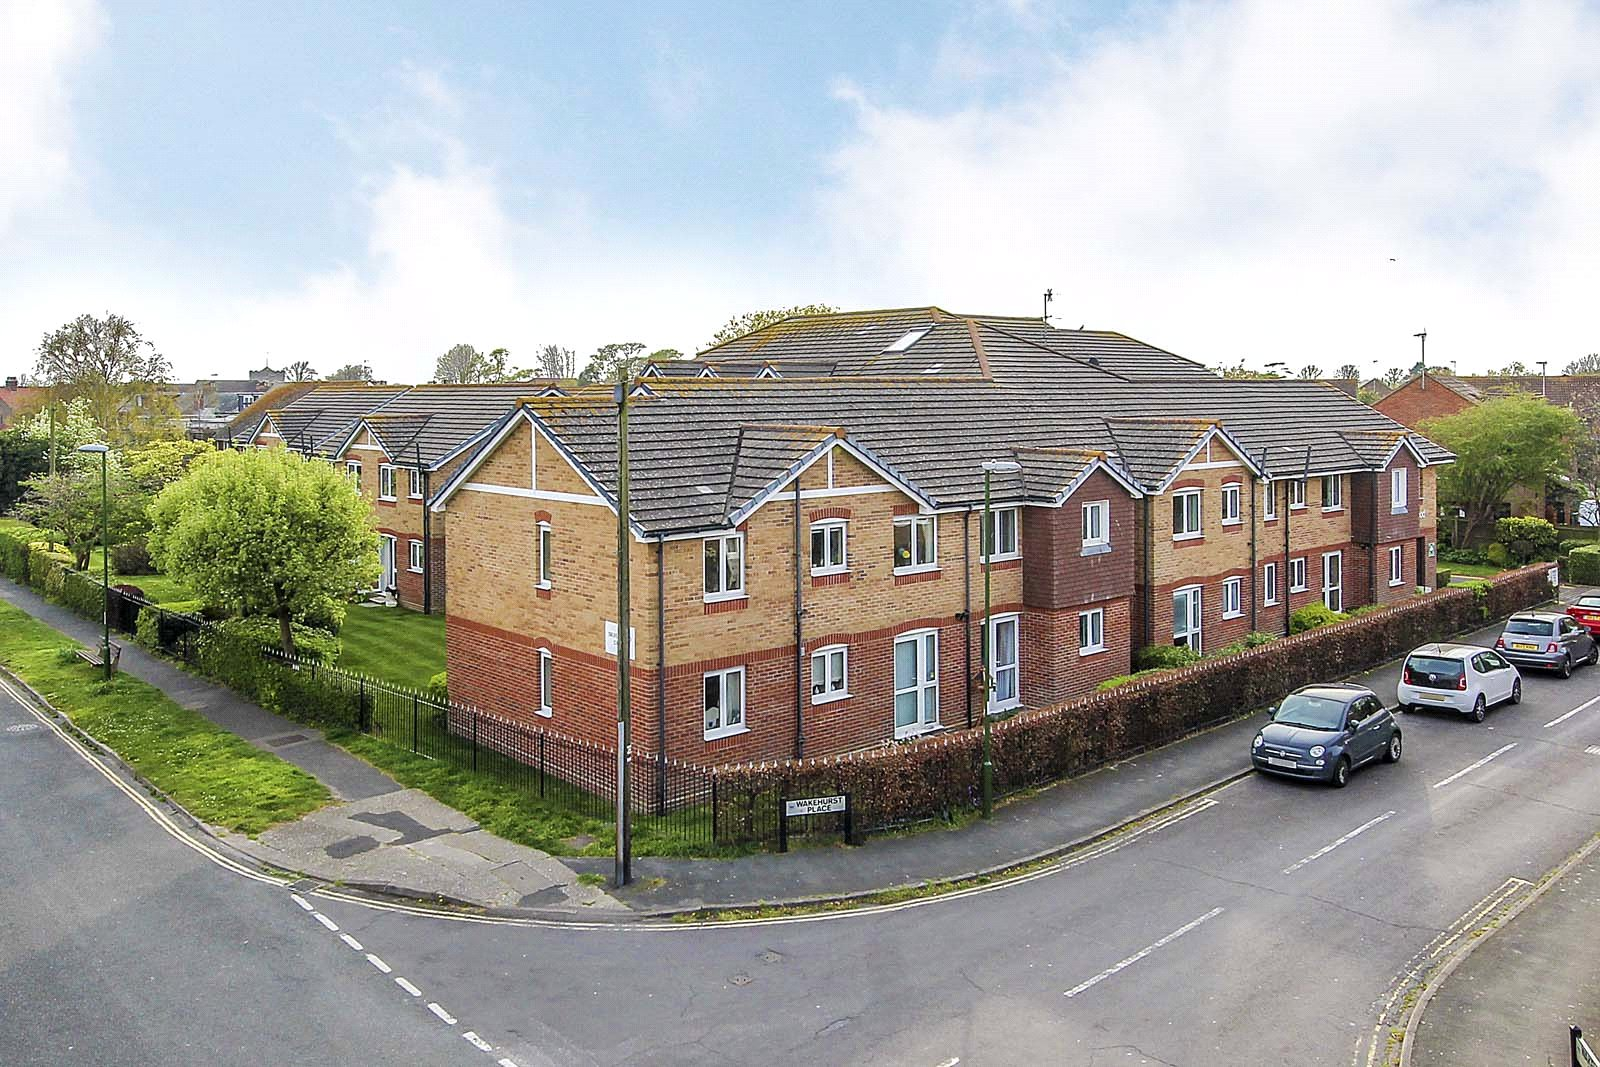 2 bed apartment for sale in Silverwood Court Wakehurst Place, Rustington, BN16